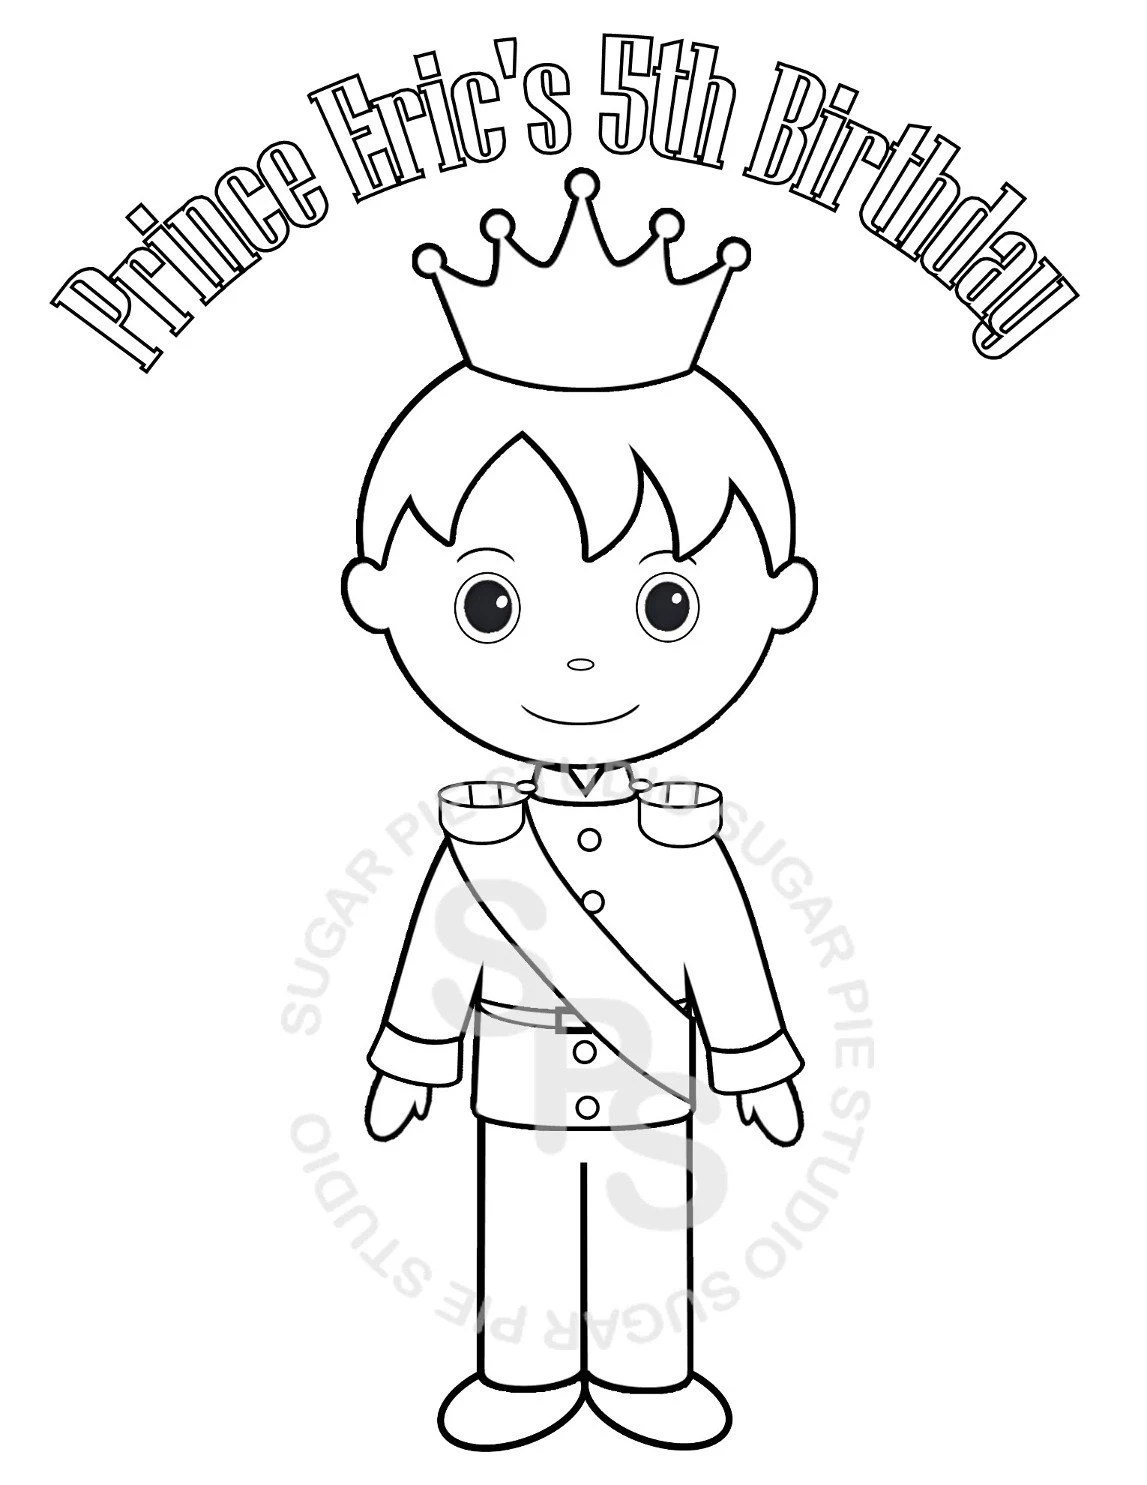 Personalized Printable Princess Prince Knight Birthday Party